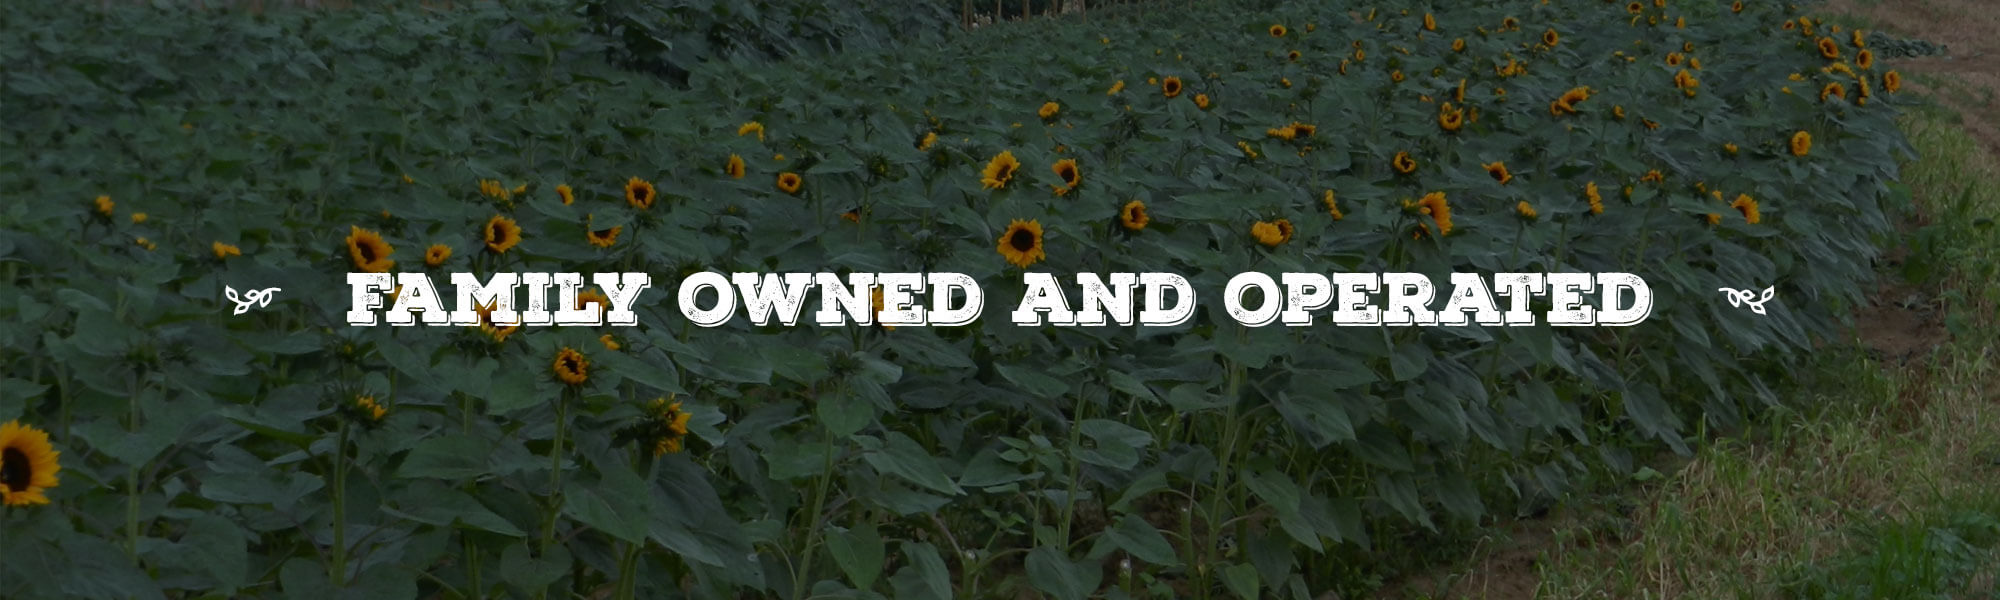 Family Owned and Operated overlay on image of Sunflower field